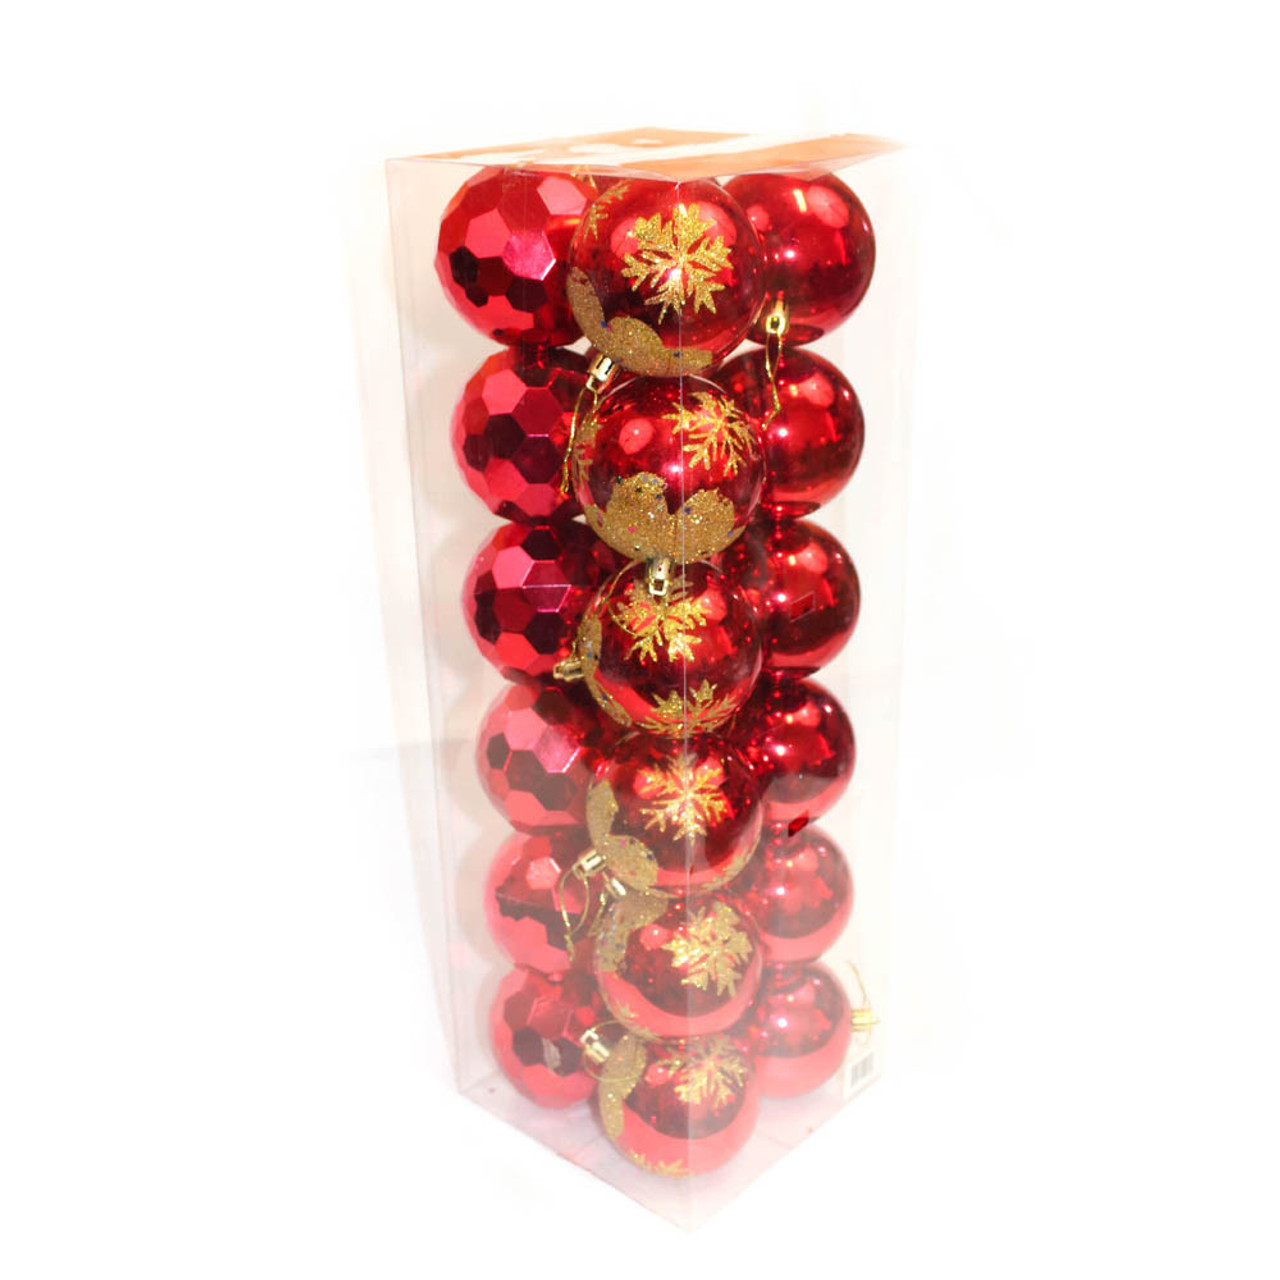 Red Christmas Ornaments.3 Red Shatterproof Christmas Ornaments